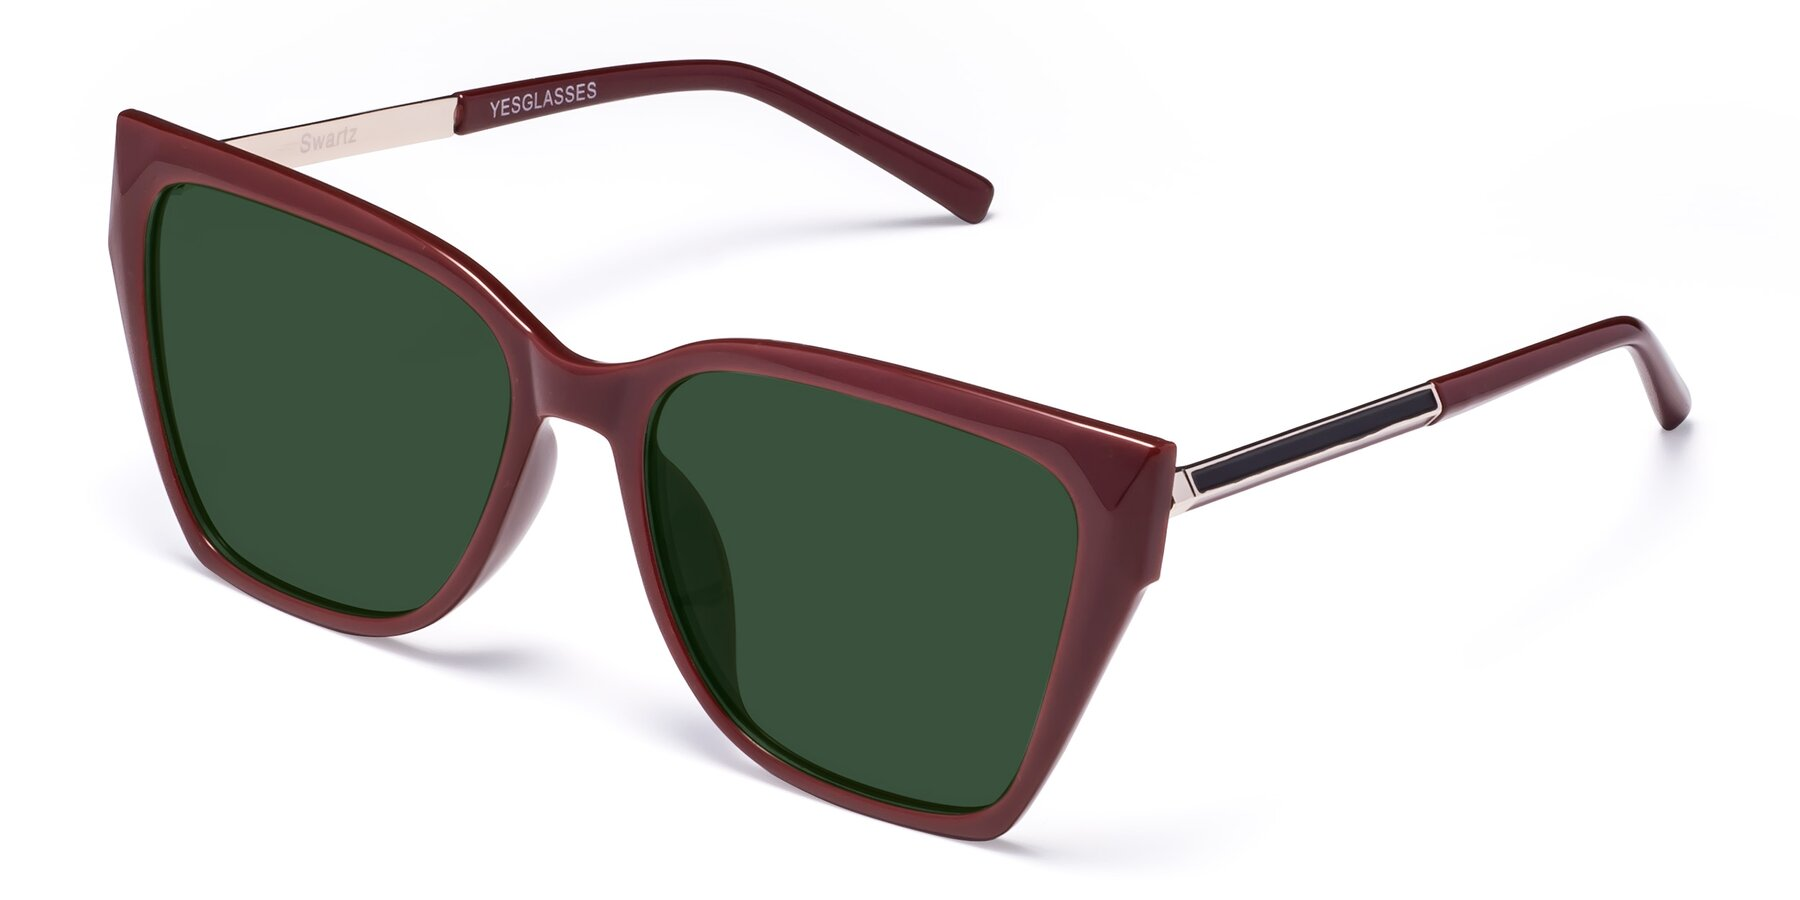 Angle of Swartz in Wine with Green Tinted Lenses